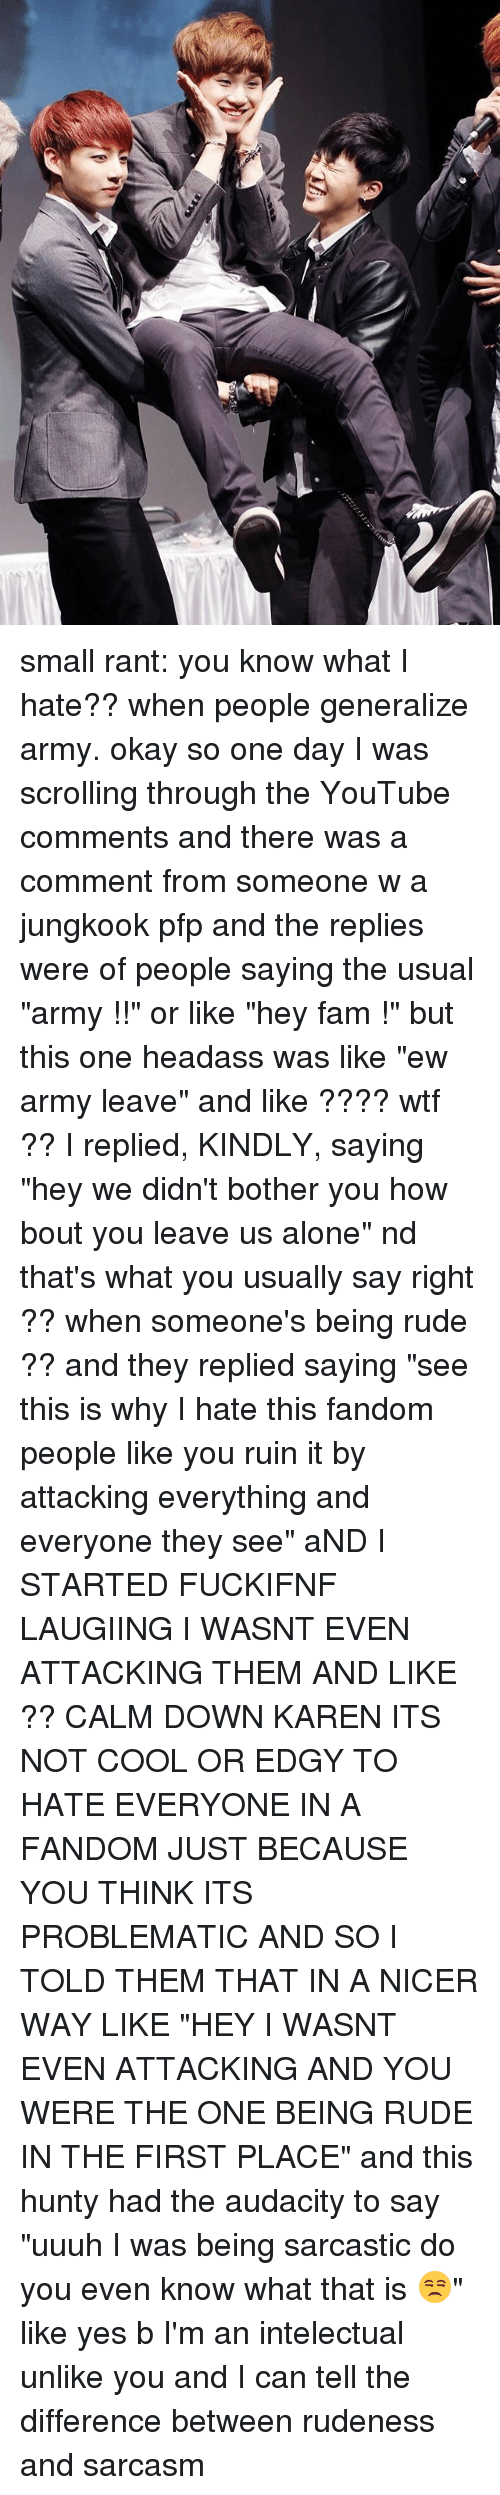 """Being Alone, Fam, and Memes: small rant: you know what I hate?? when people generalize army. okay so one day I was scrolling through the YouTube comments and there was a comment from someone w a jungkook pfp and the replies were of people saying the usual """"army !!"""" or like """"hey fam !"""" but this one headass was like """"ew army leave"""" and like ???? wtf ?? I replied, KINDLY, saying """"hey we didn't bother you how bout you leave us alone"""" nd that's what you usually say right ?? when someone's being rude ?? and they replied saying """"see this is why I hate this fandom people like you ruin it by attacking everything and everyone they see"""" aND I STARTED FUCKIFNF LAUGIING I WASNT EVEN ATTACKING THEM AND LIKE ?? CALM DOWN KAREN ITS NOT COOL OR EDGY TO HATE EVERYONE IN A FANDOM JUST BECAUSE YOU THINK ITS PROBLEMATIC AND SO I TOLD THEM THAT IN A NICER WAY LIKE """"HEY I WASNT EVEN ATTACKING AND YOU WERE THE ONE BEING RUDE IN THE FIRST PLACE"""" and this hunty had the audacity to say """"uuuh I was being sarcastic do you even know what that is 😒"""" like yes b I'm an intelectual unlike you and I can tell the difference between rudeness and sarcasm"""